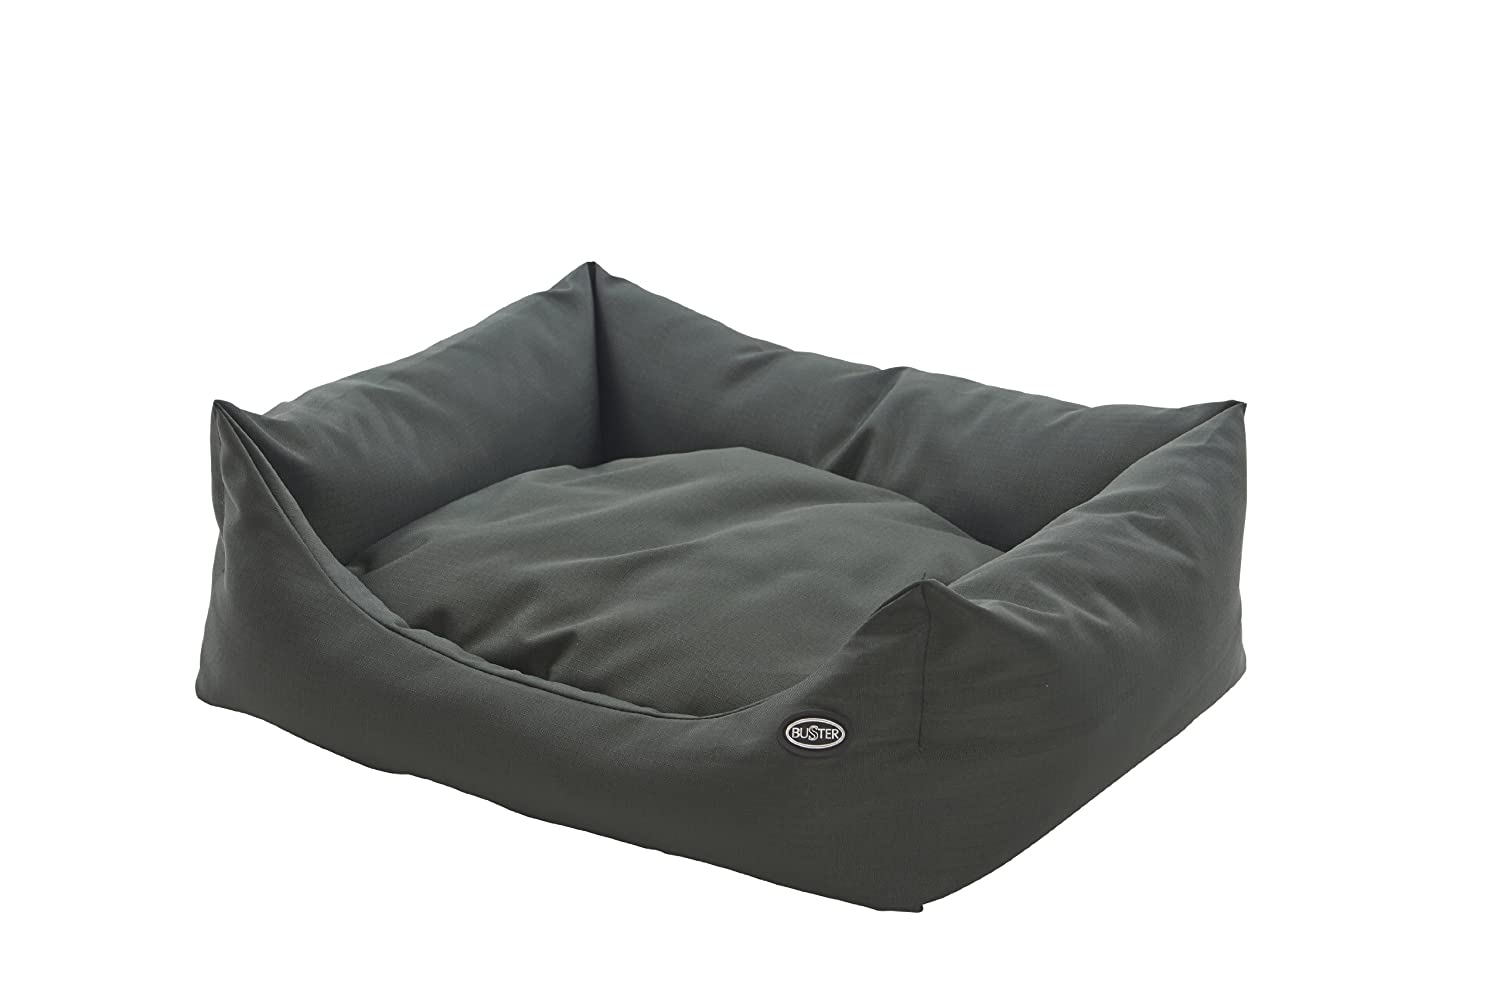 Green 45 x 60cmBuster Sofa Bed for Dogs, 60 x 45 cm, Artichoke Green Steel Grey